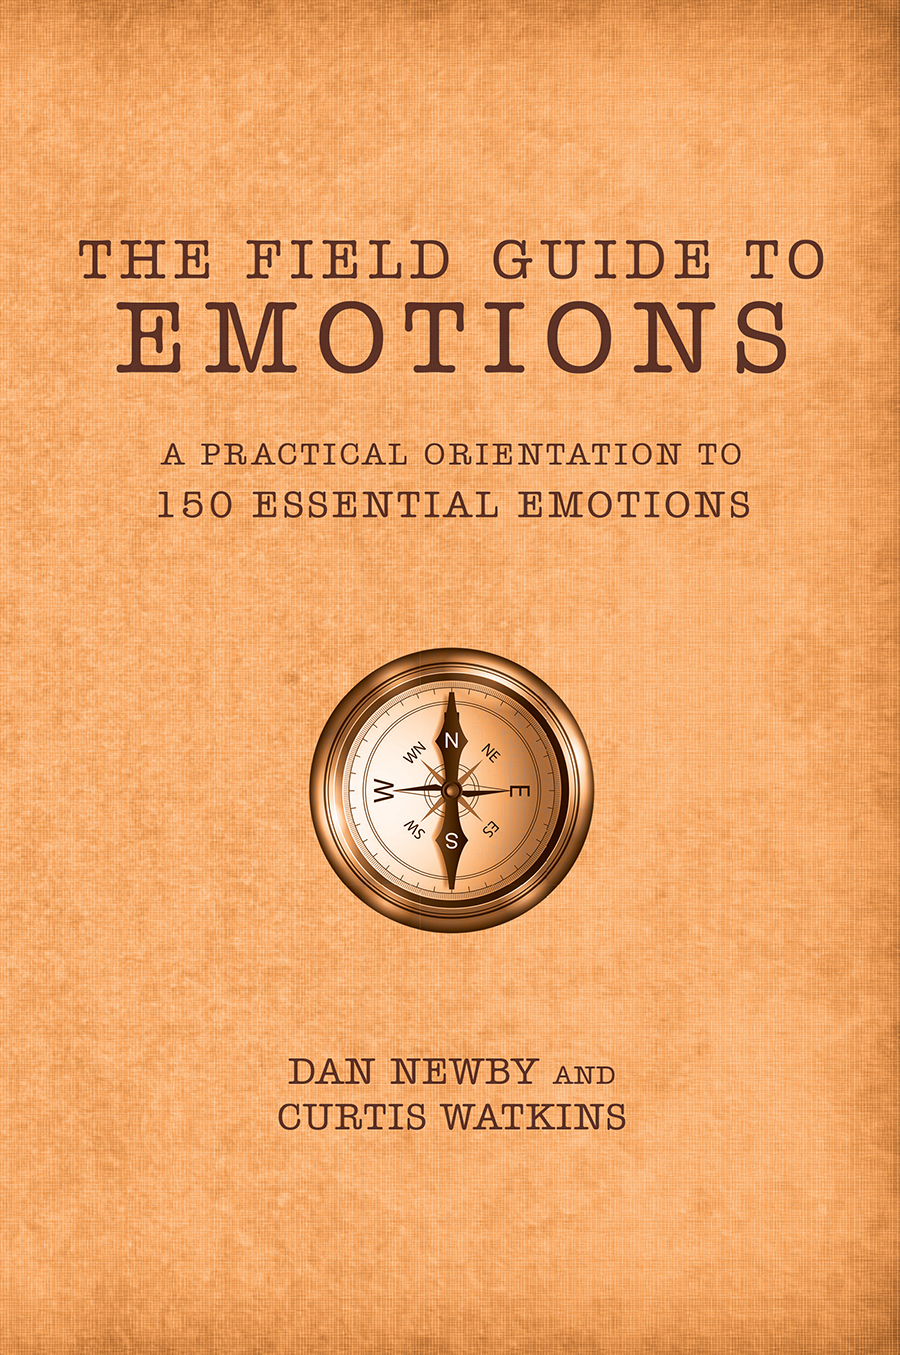 The Field Guide To Emotions_Cover_low.jpg